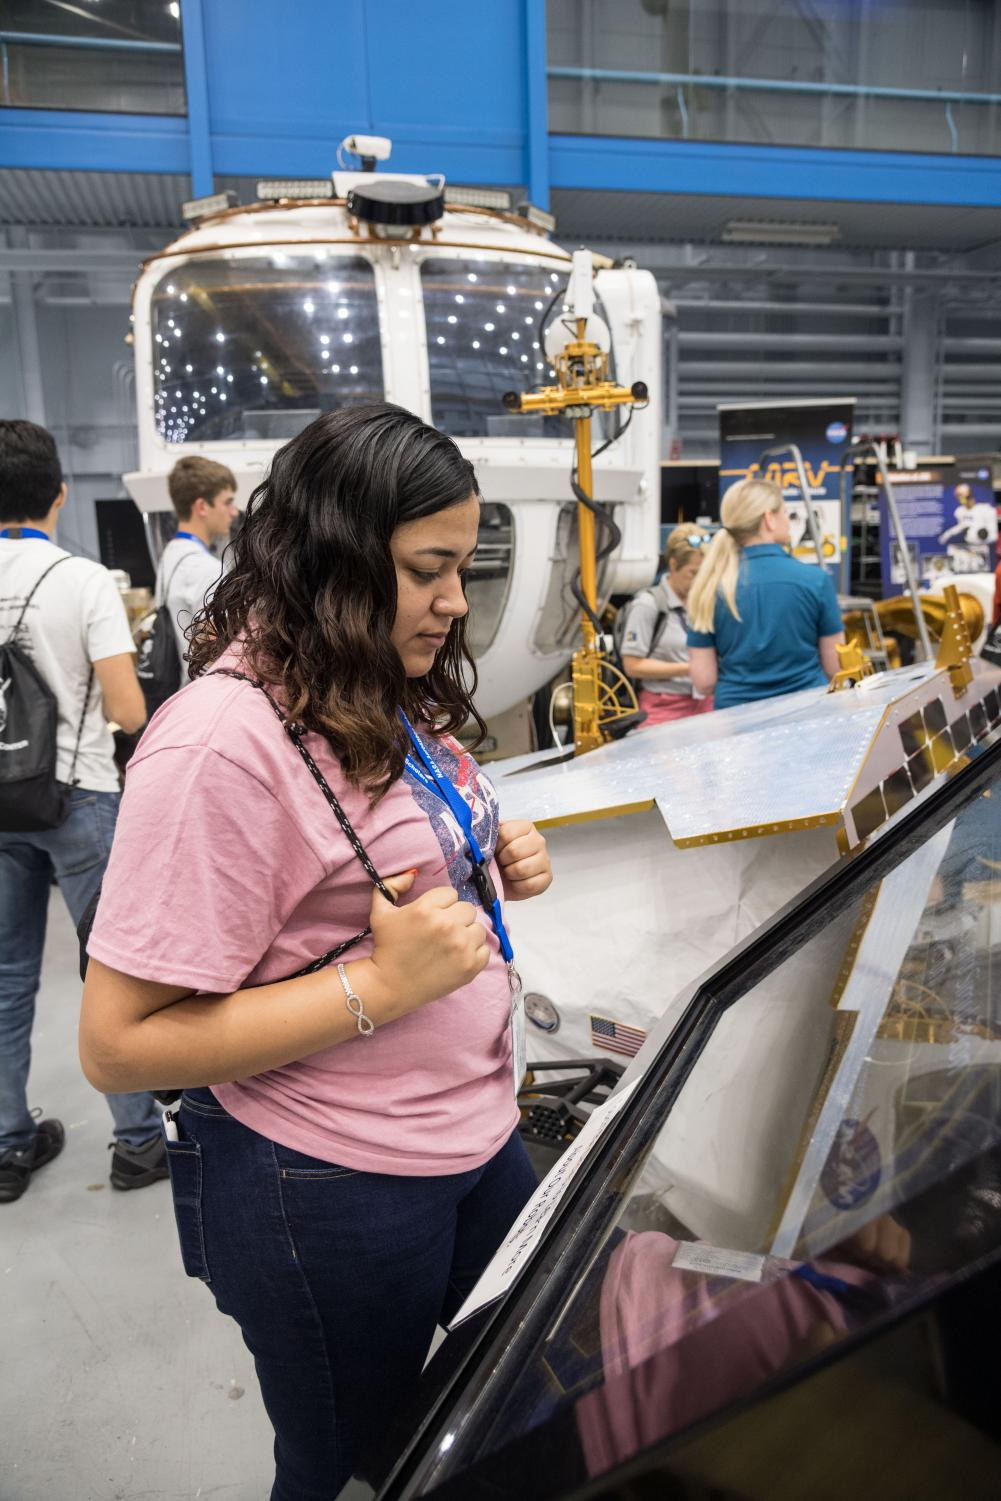 Senior Melanie Villarreal looks through a display case at NASA's Johnson Space Center in Houston. She is leading efforts on campus to get others to participate in the program next year.